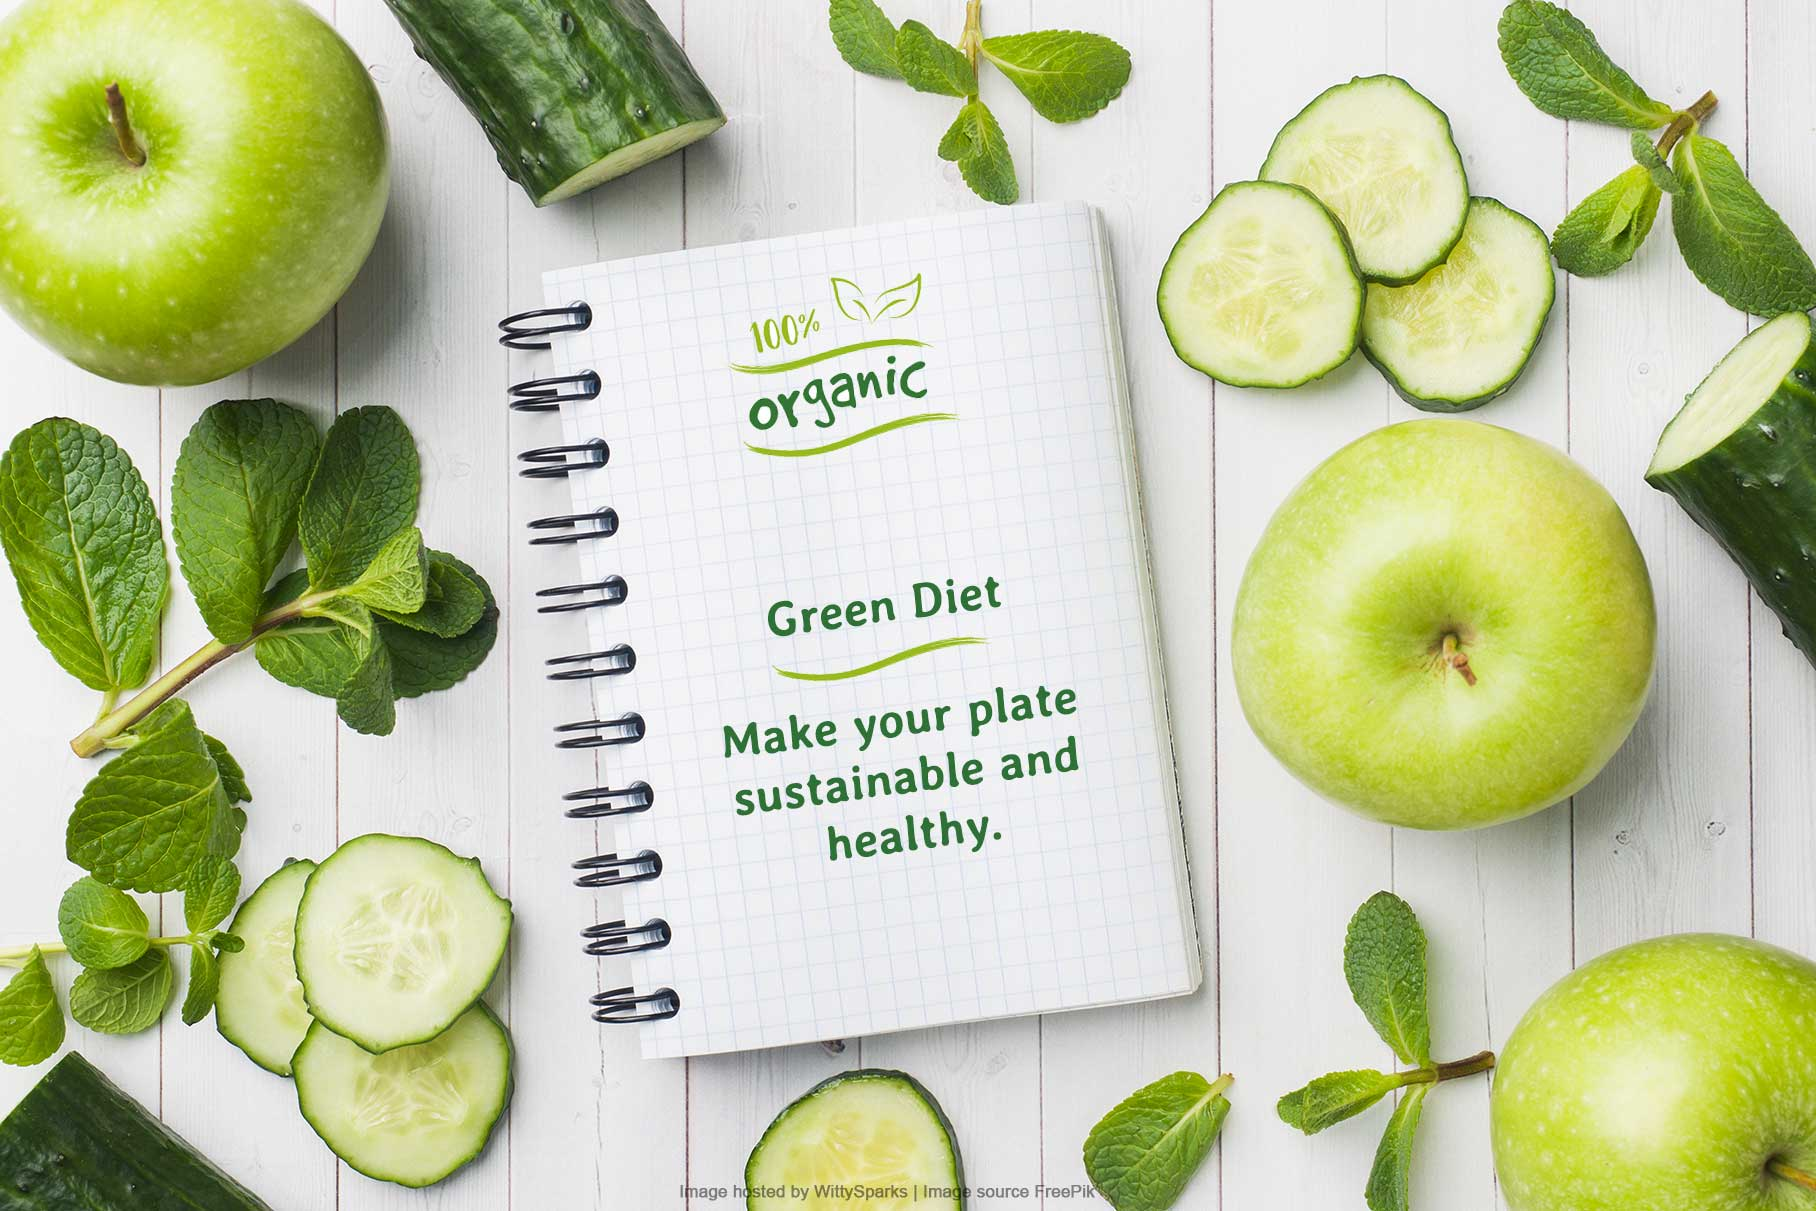 Green Diet - 100% Organic and Healthy